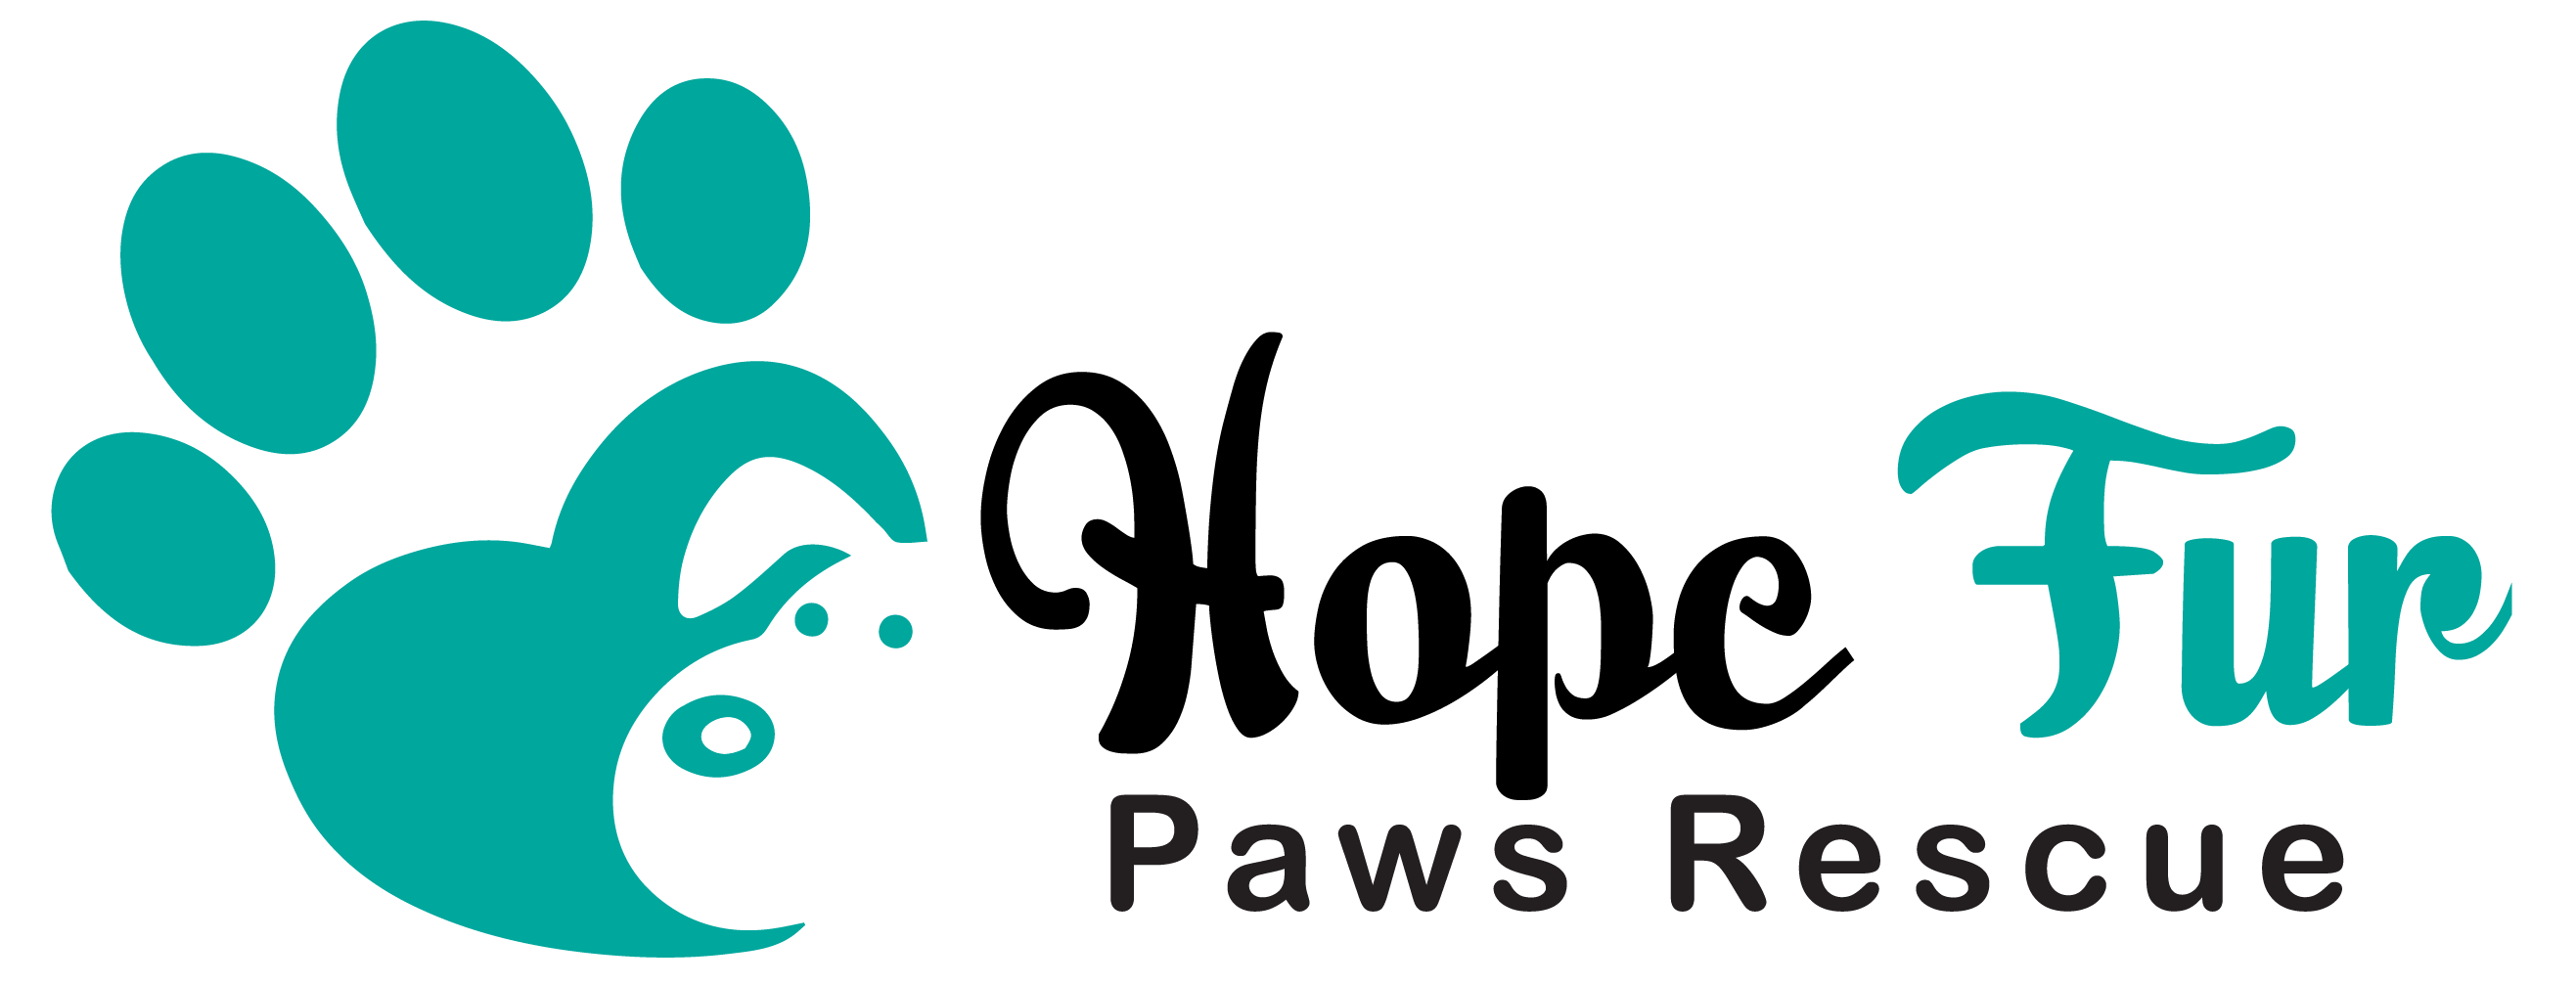 Hope Fur Paws Rescue